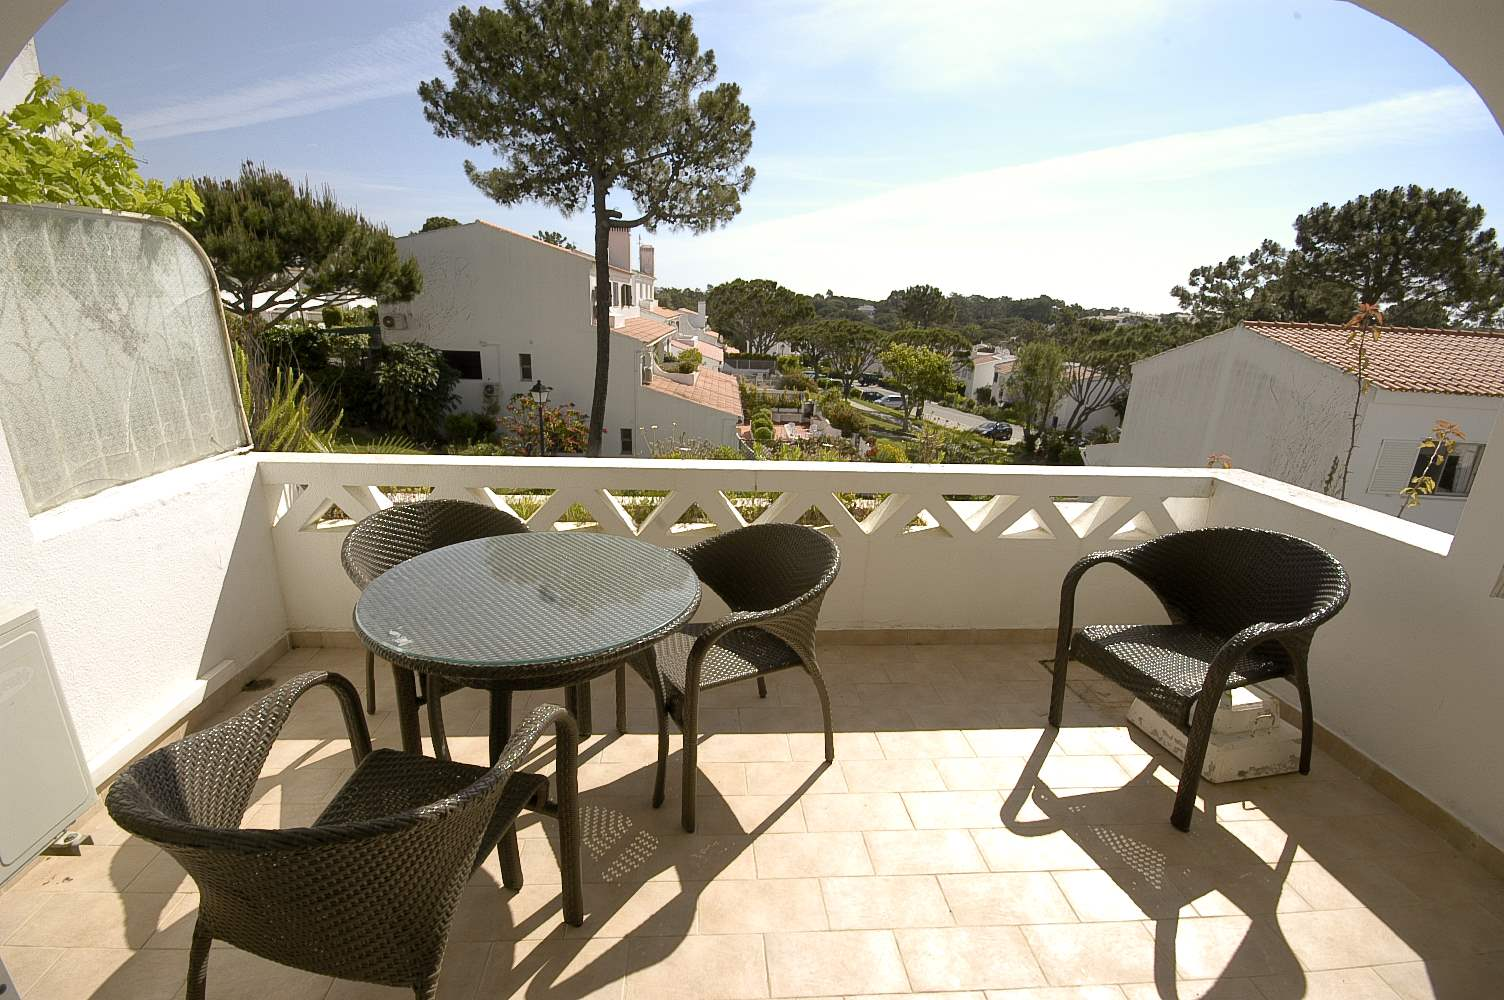 Apartment Azalea 2, 2 bedroom apartment in Vale do Lobo, Algarve Photo #2